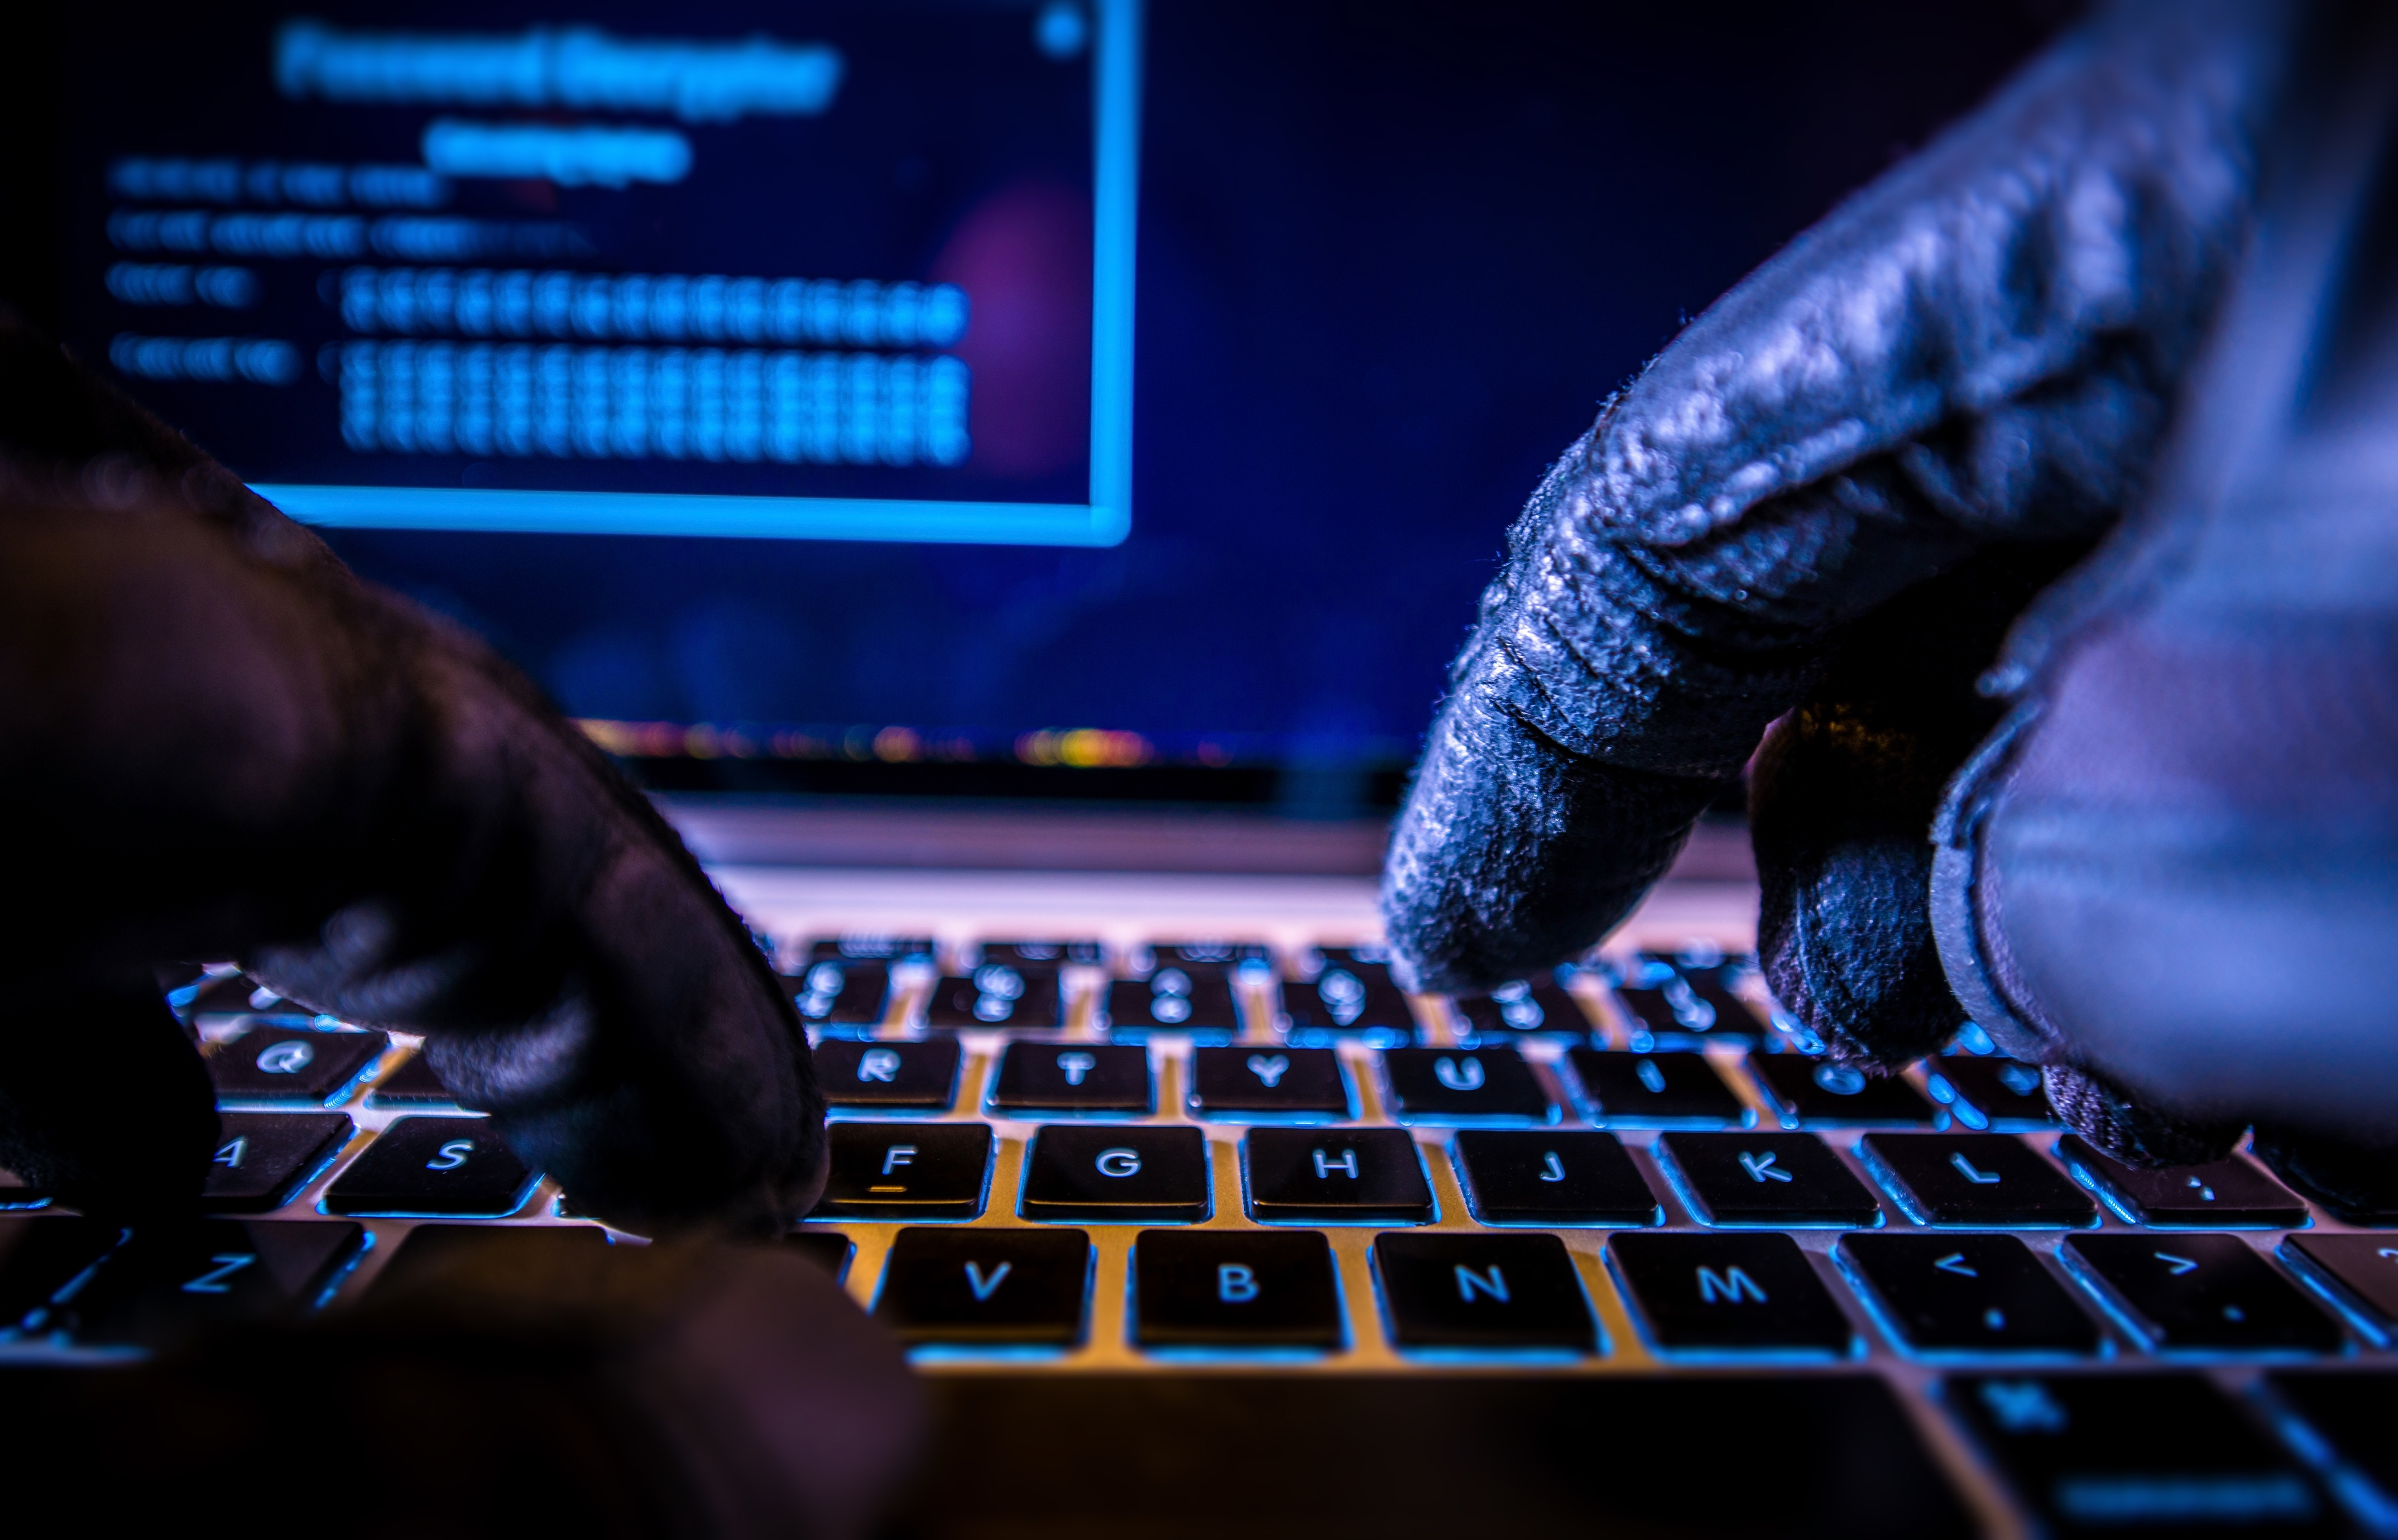 MIT tool lights up darknet to expose illegal operations